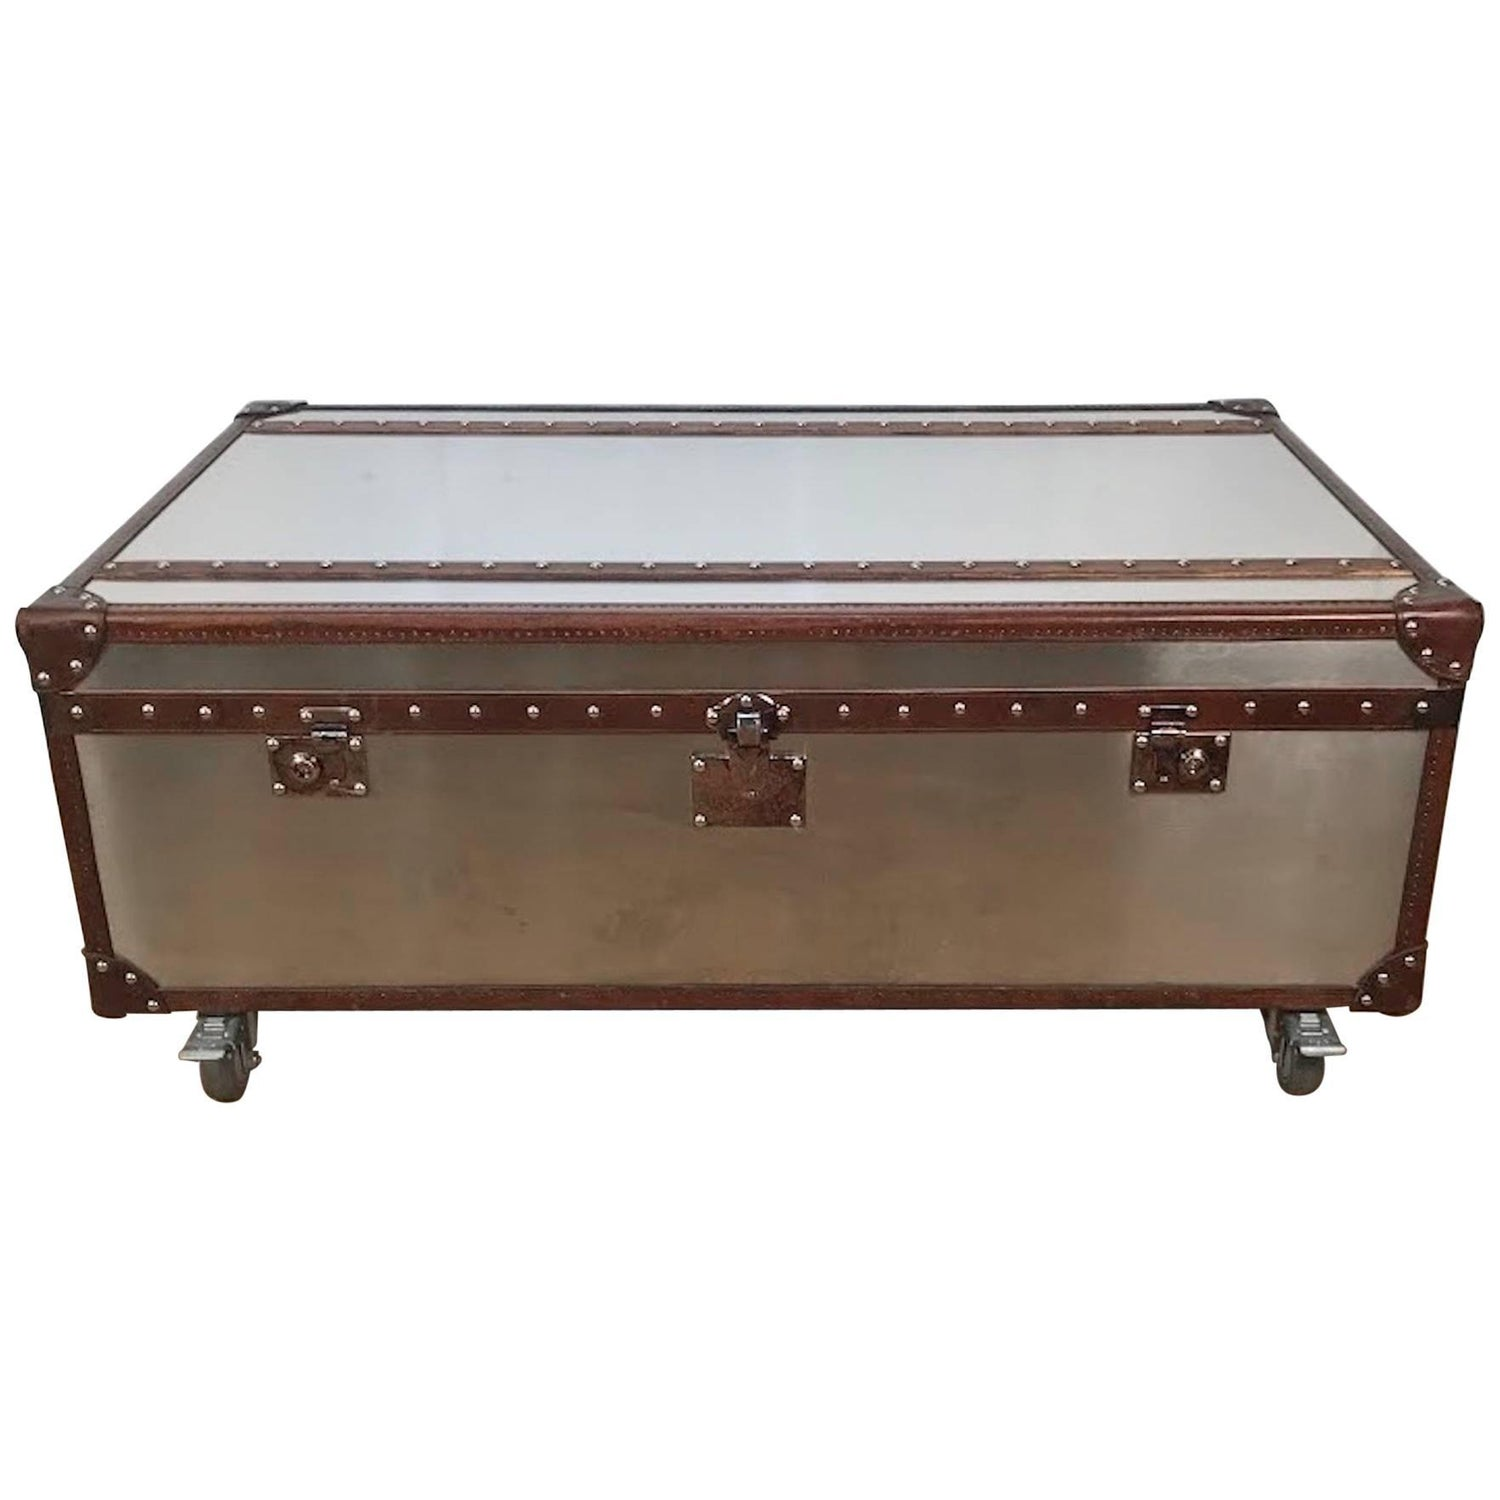 1920s French Travel Trunk Coffee Table with Leather Straps and